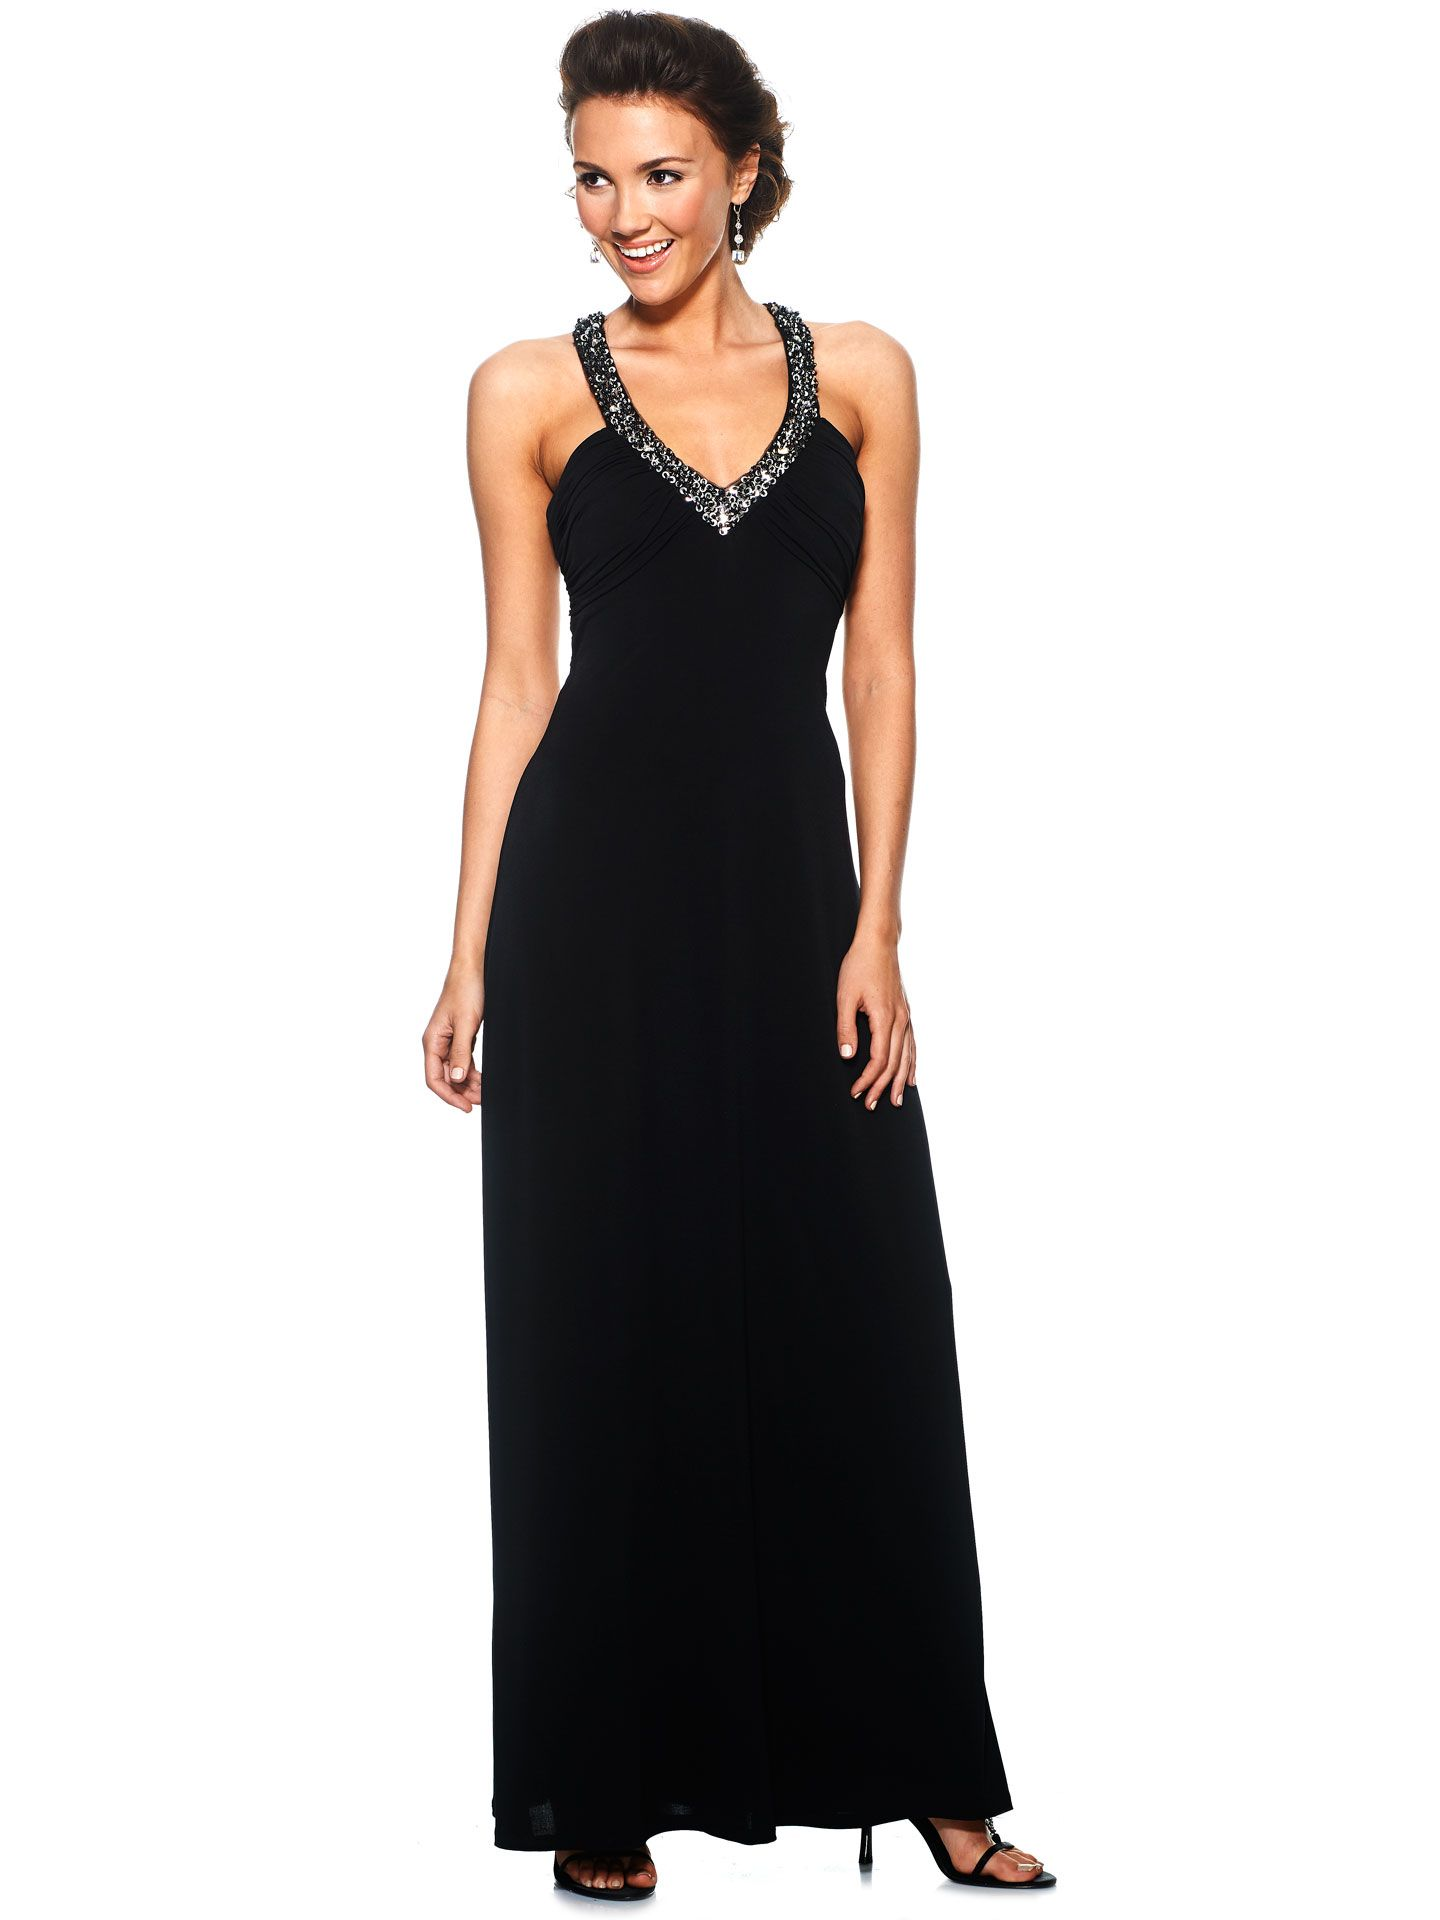 7a5c85bb3ea 23 Edgy Black Prom Dresses Guaranteed to Make You Stand Out